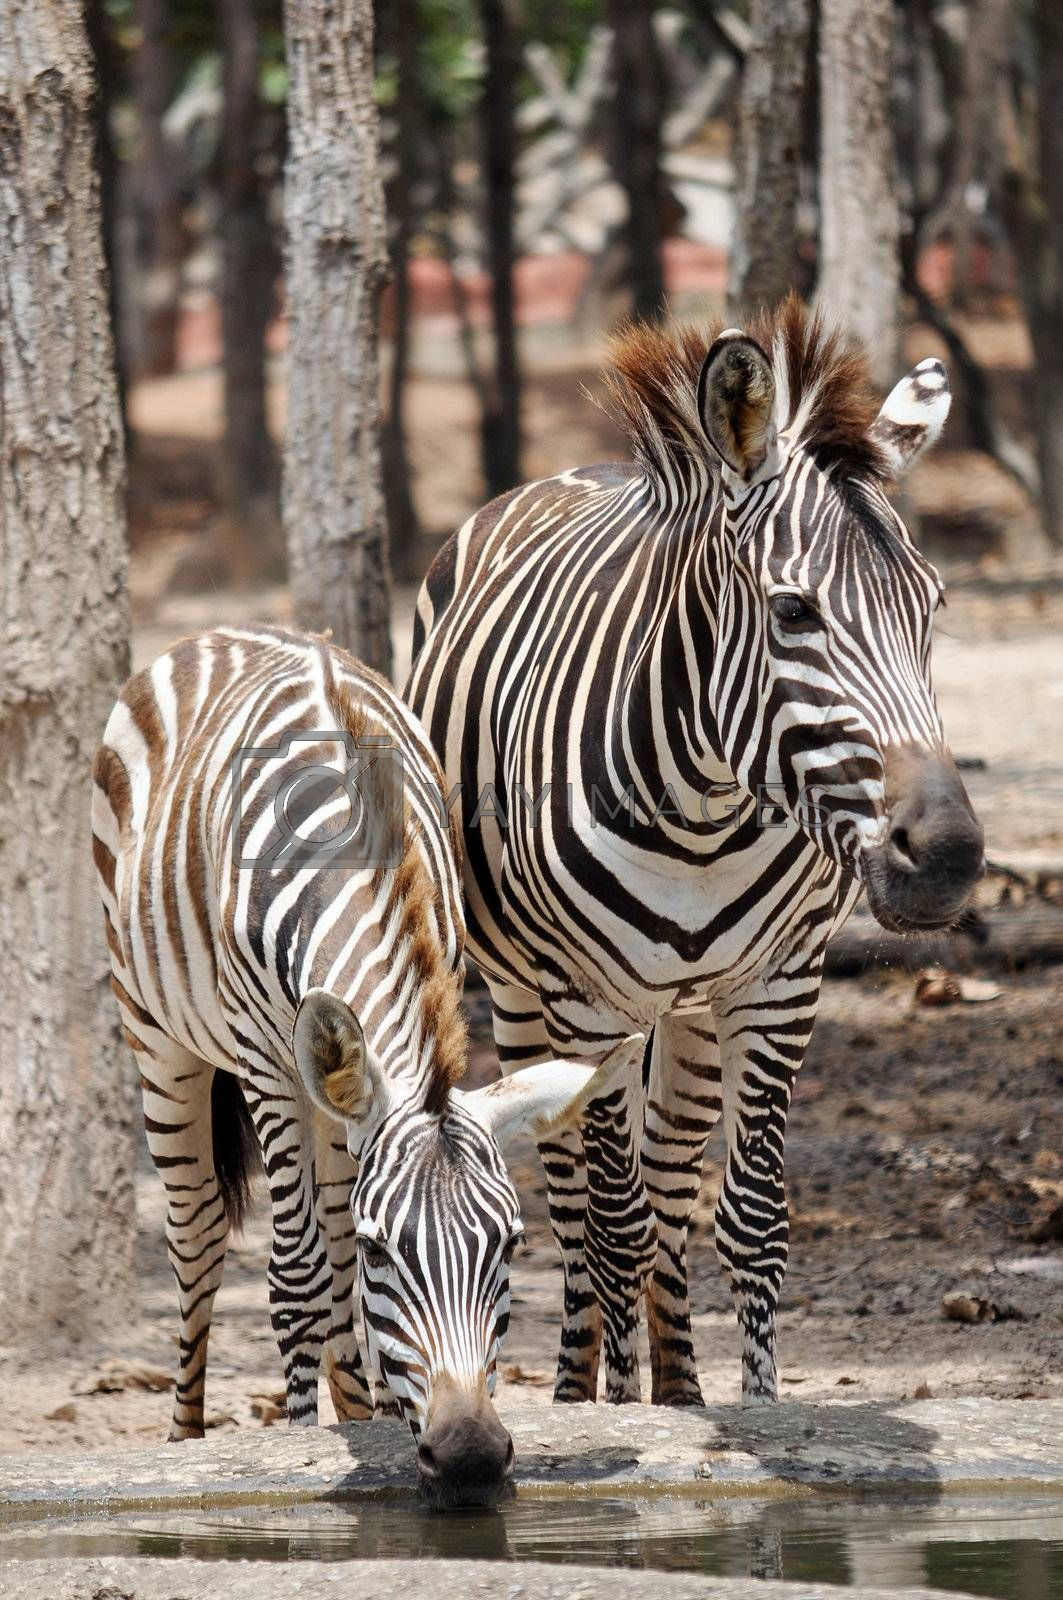 The unique stripes of zebras make these among the animals most familiar to people.